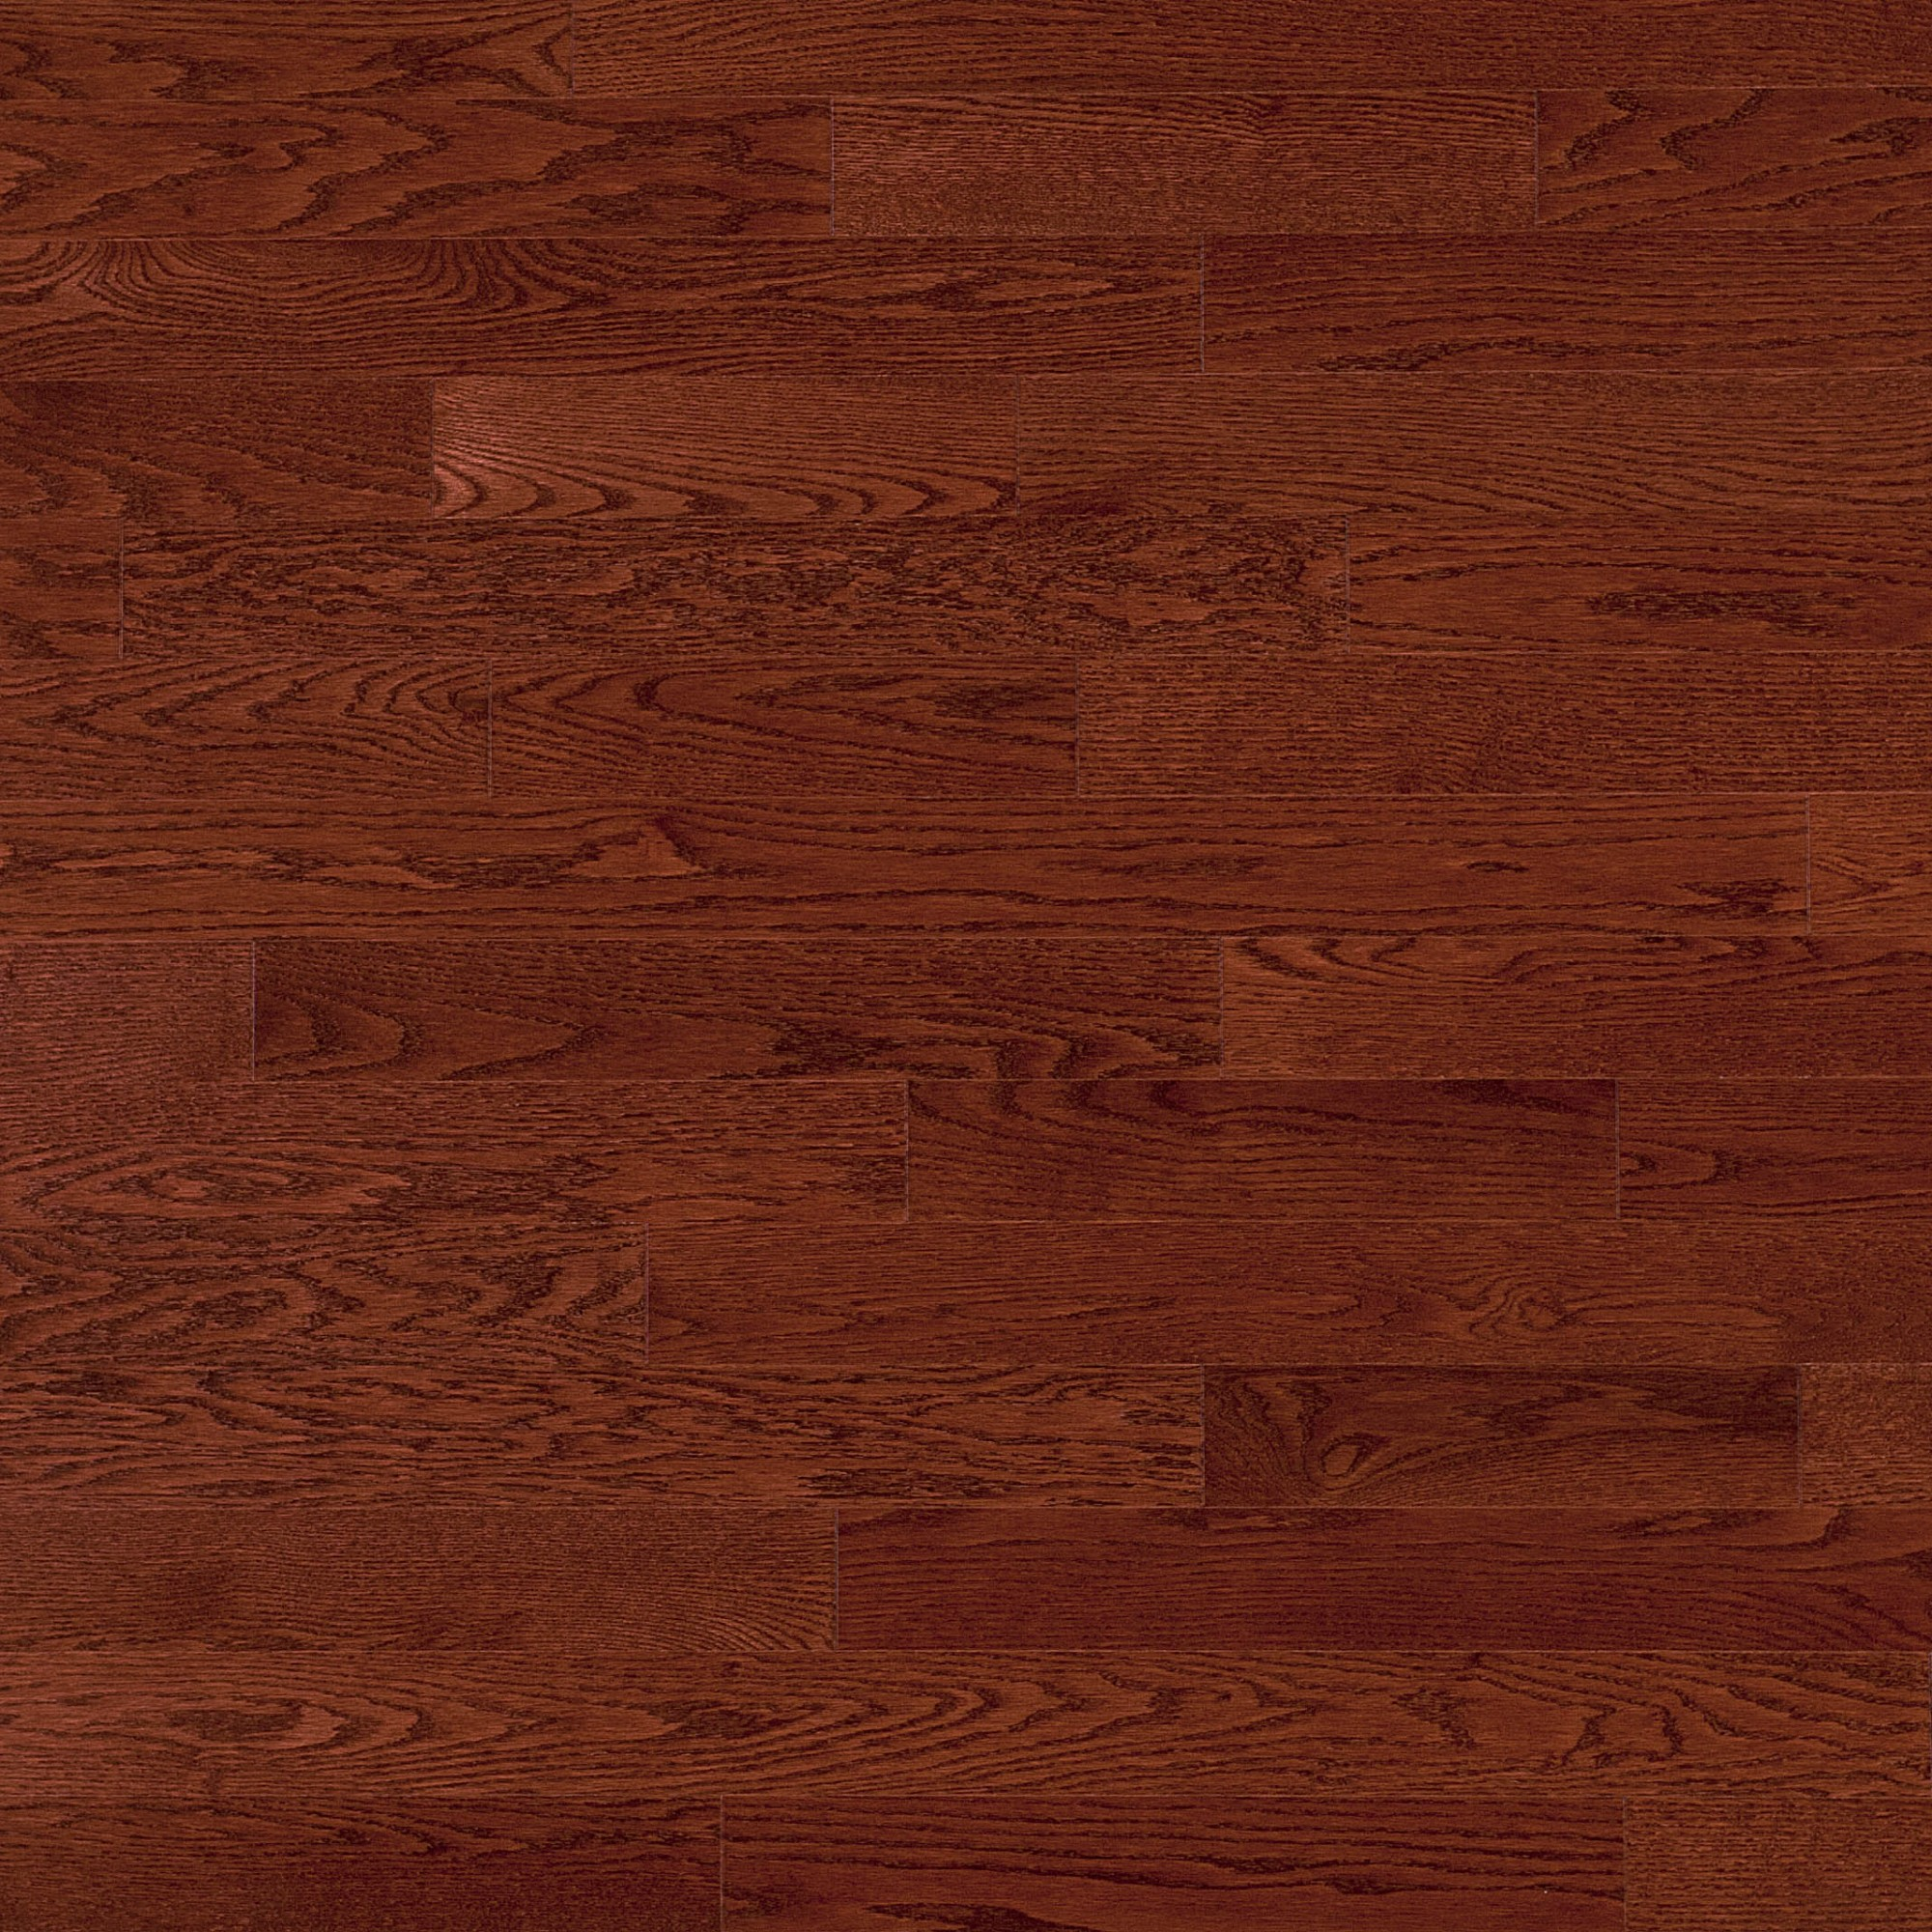 Red oak canyon mirage hardwood floors call for special for Red oak hardwood flooring